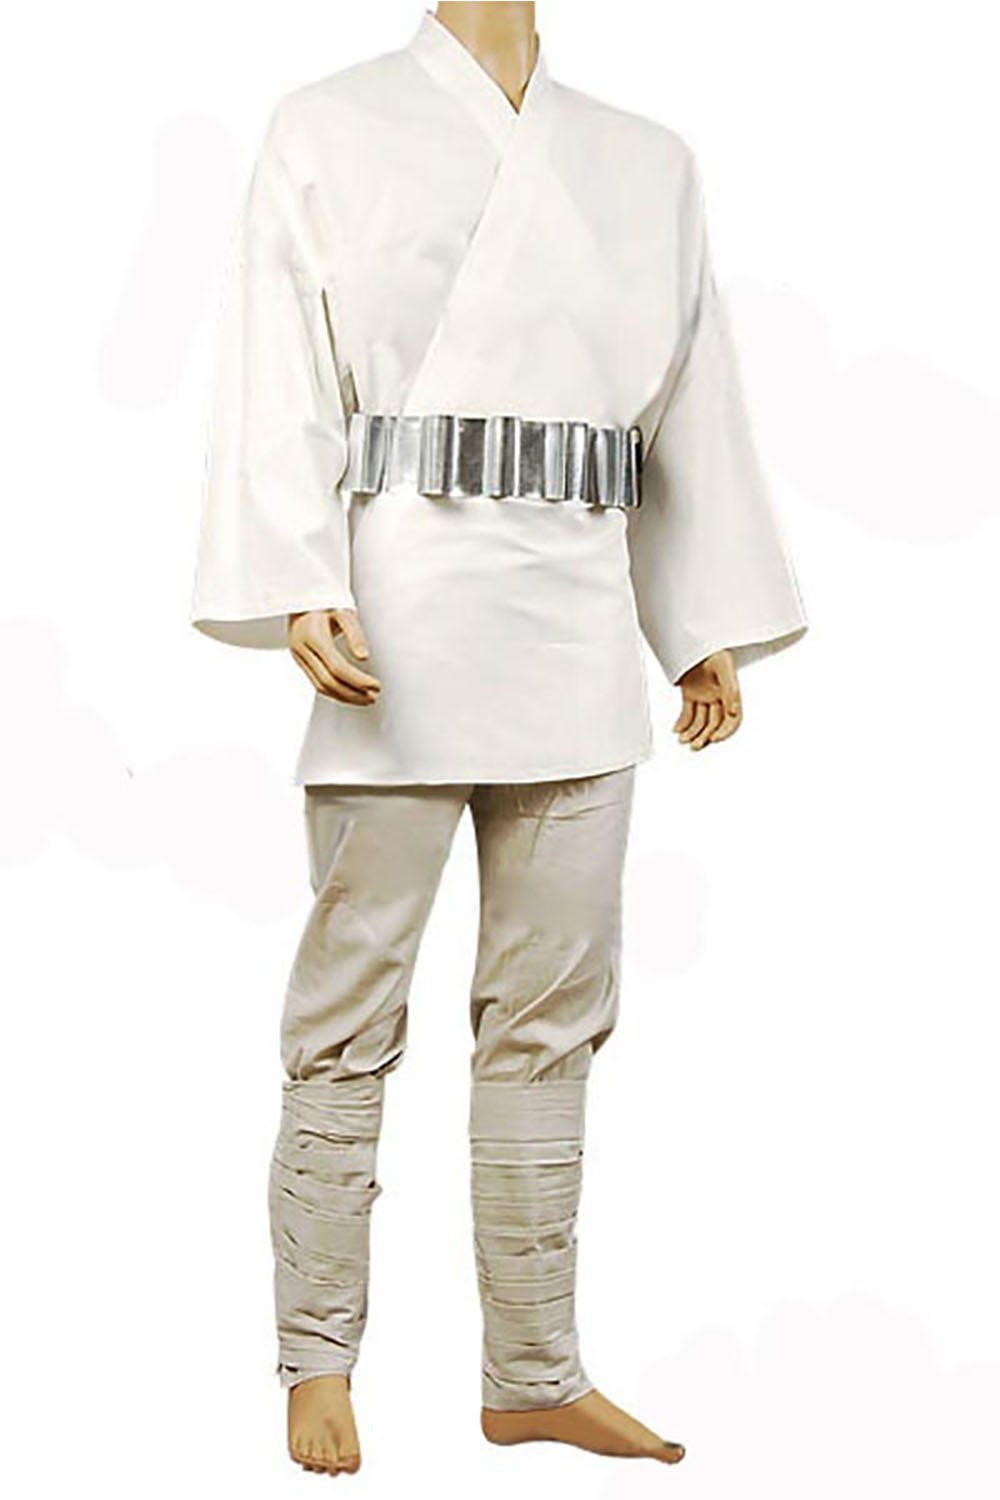 Star Wars Luke Skywalker Tunic Cosplay Kostüm Weiß